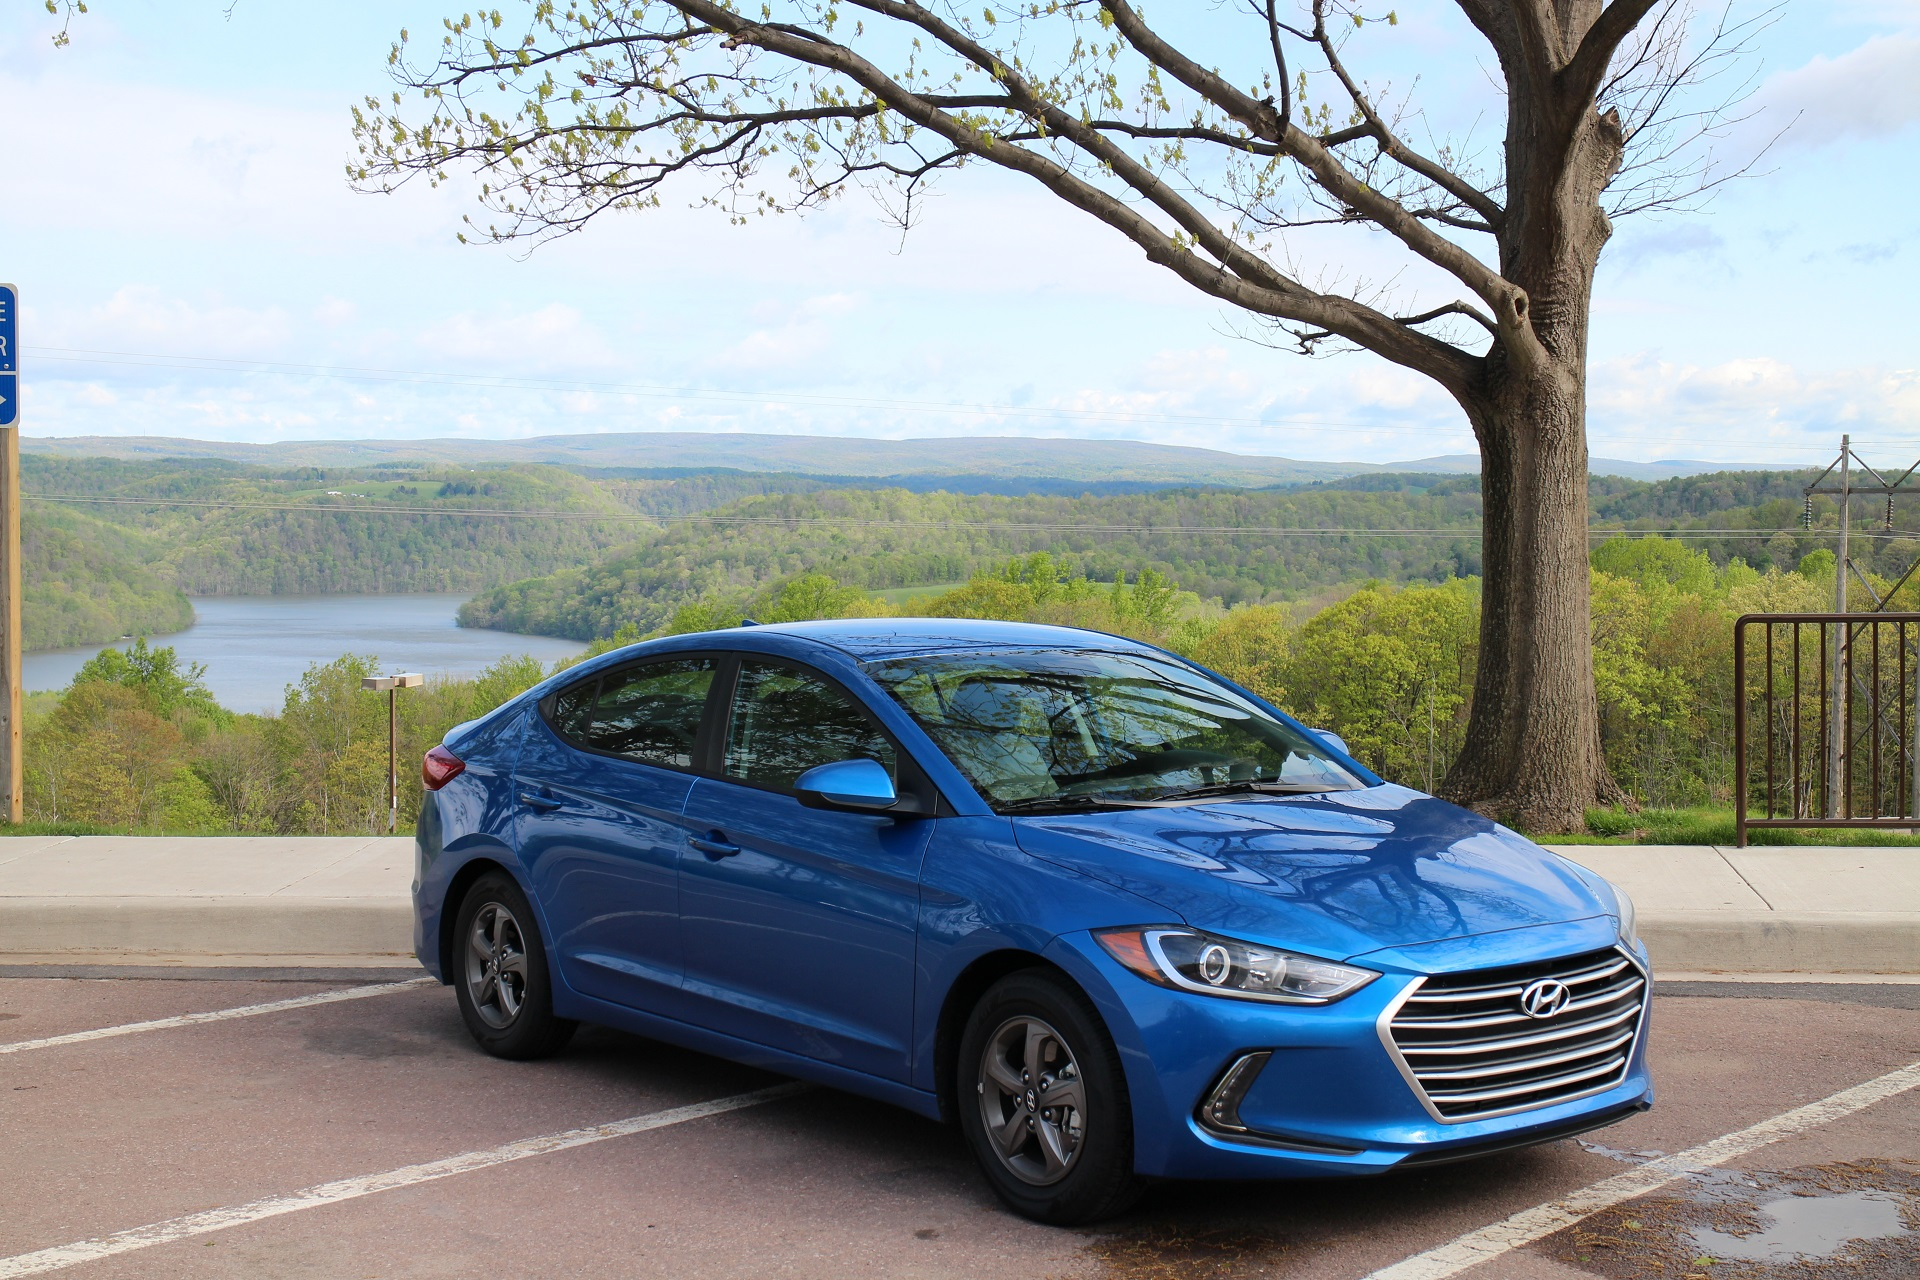 Best Gas Mileage Road Trip Cars